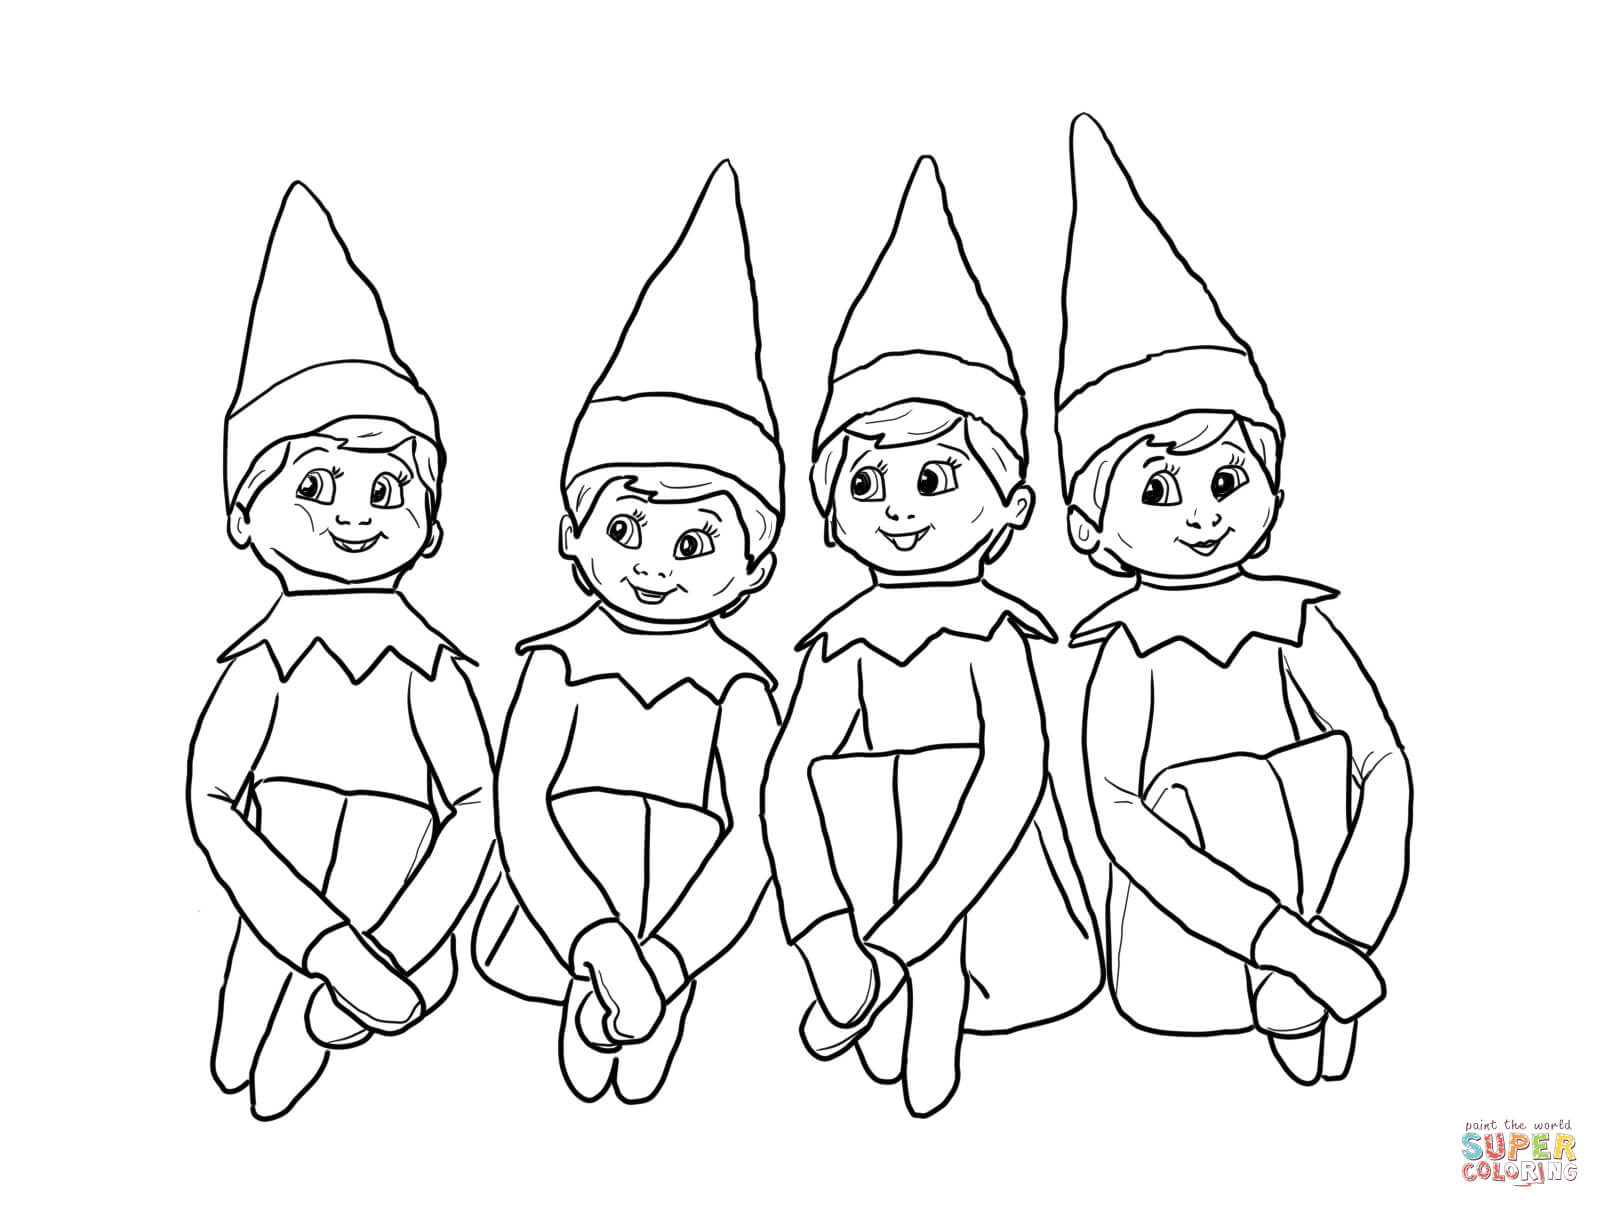 elf-on-the-shelf-coloring-page-0009-q1